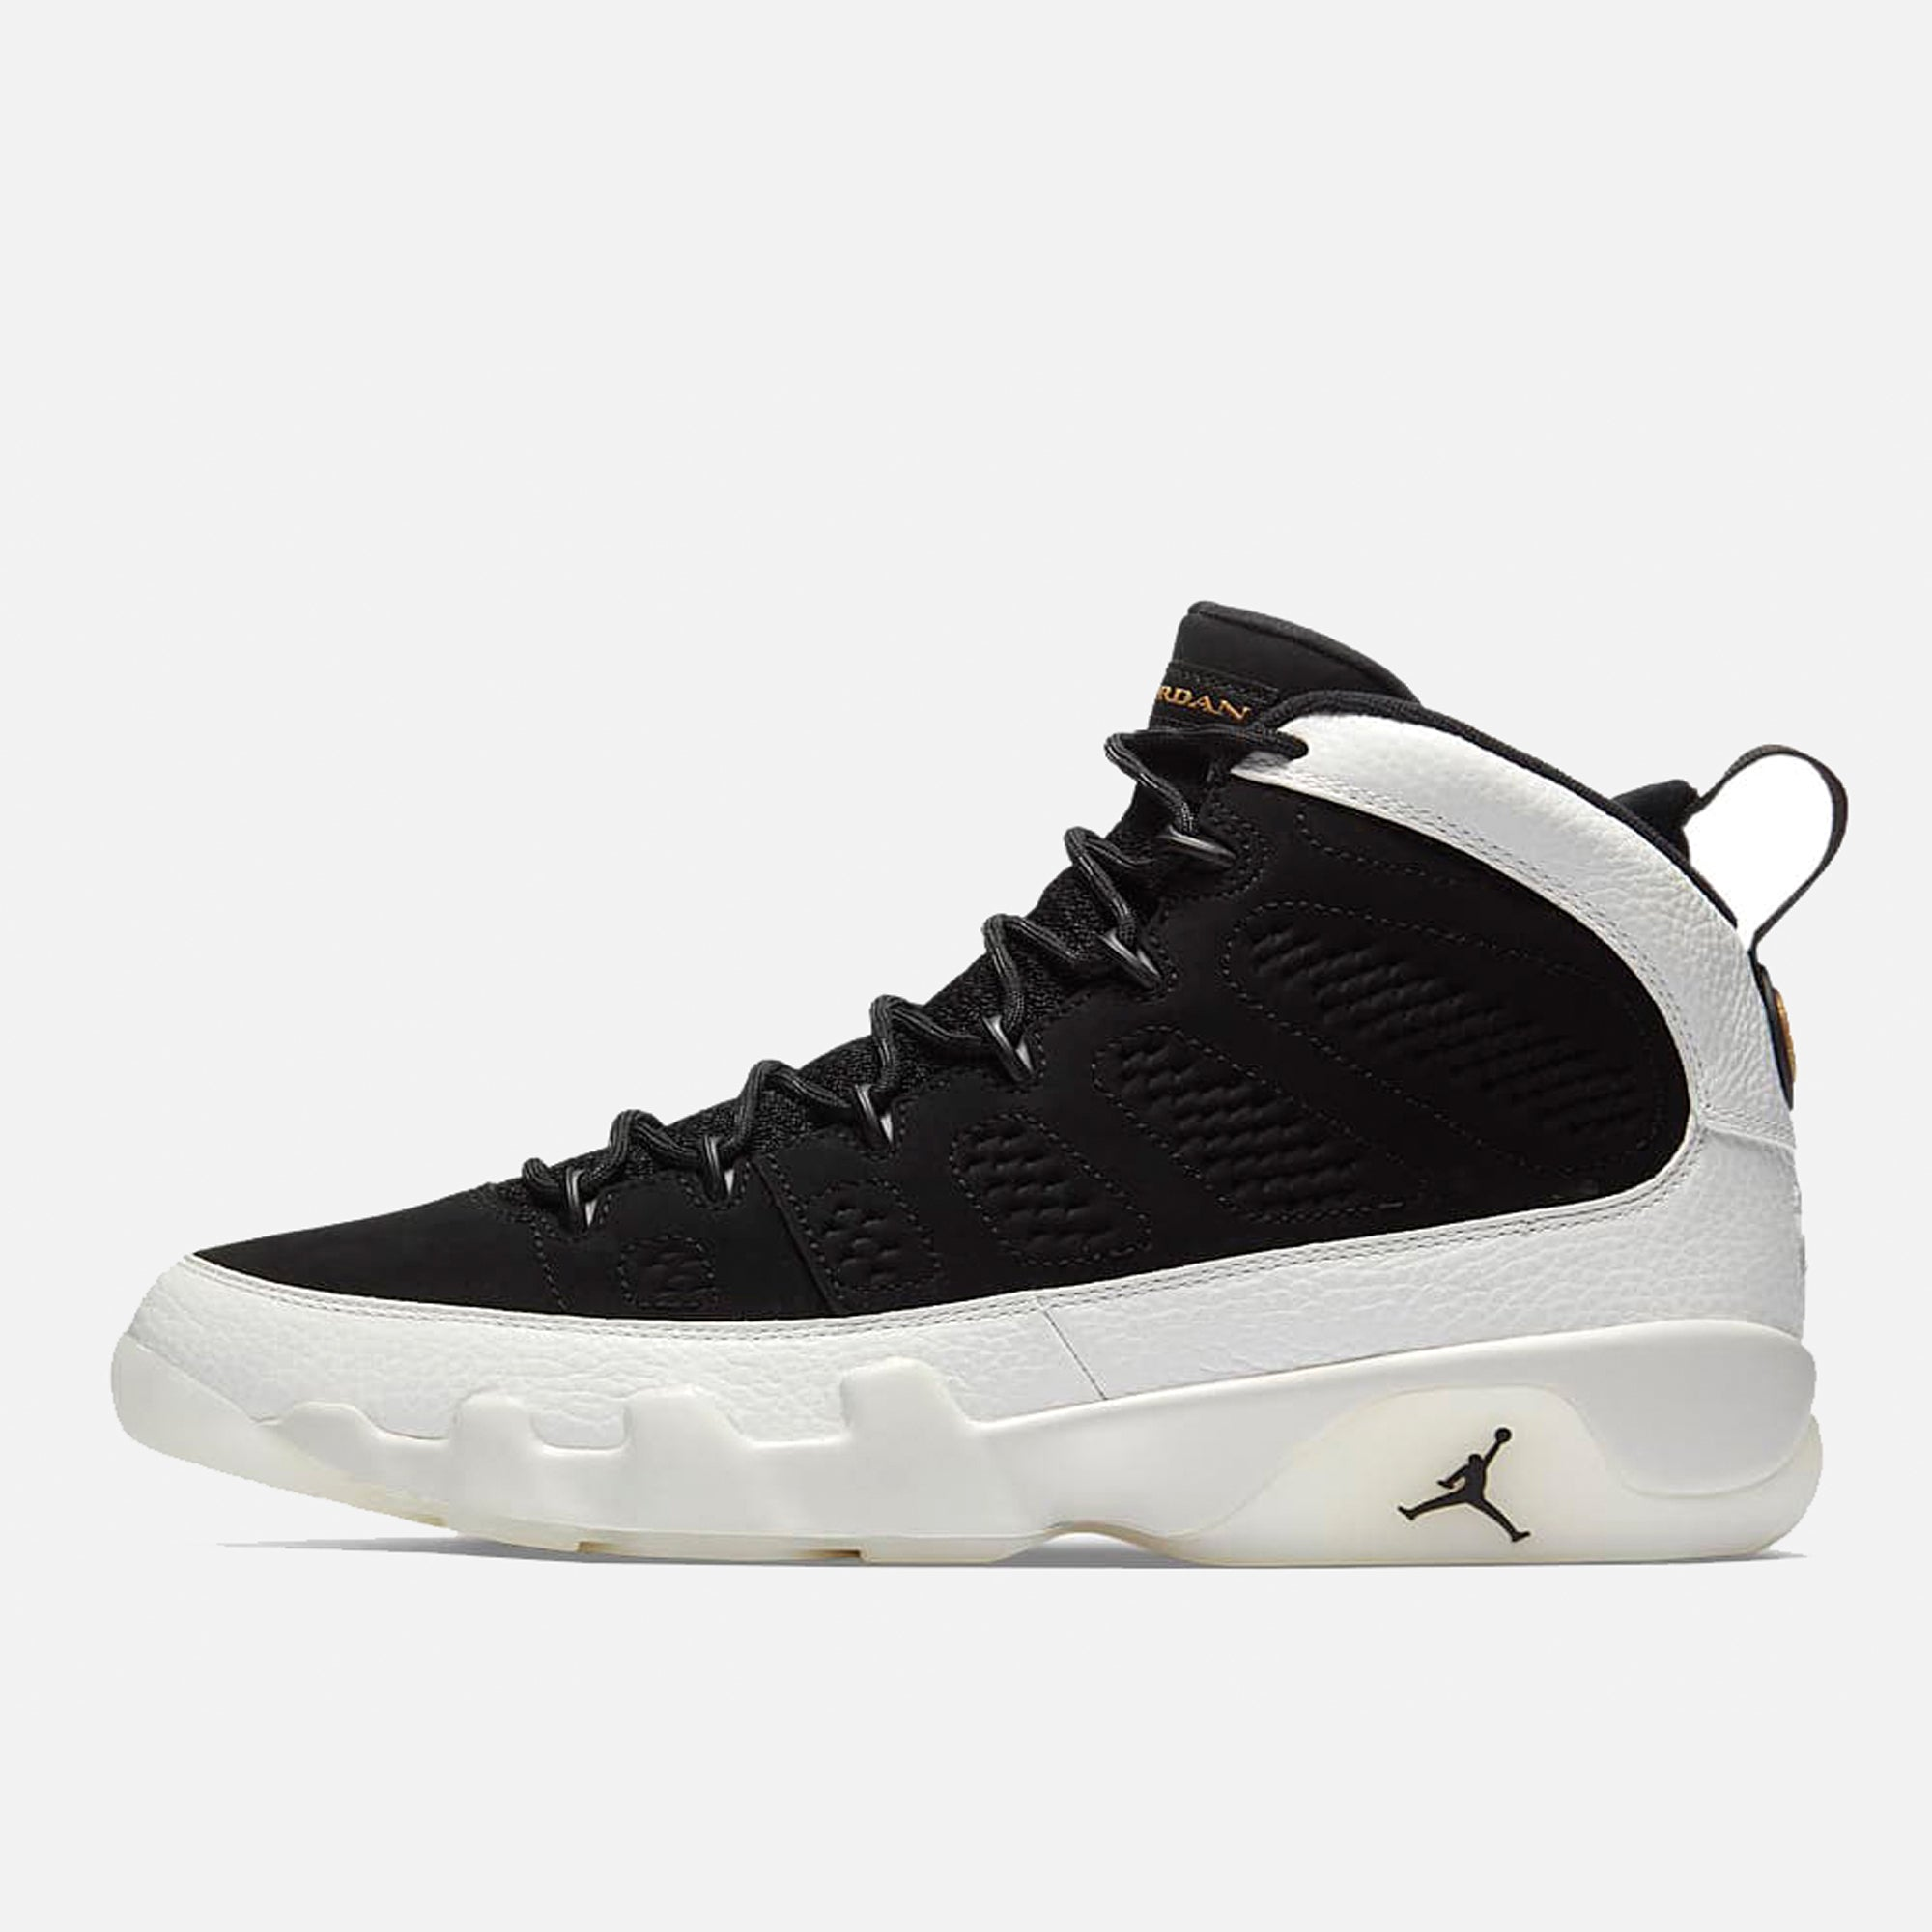 92d6ef9e446 ... coupon for air jordan 9 ix retro la los angeles nba all star black  white pzozo ...